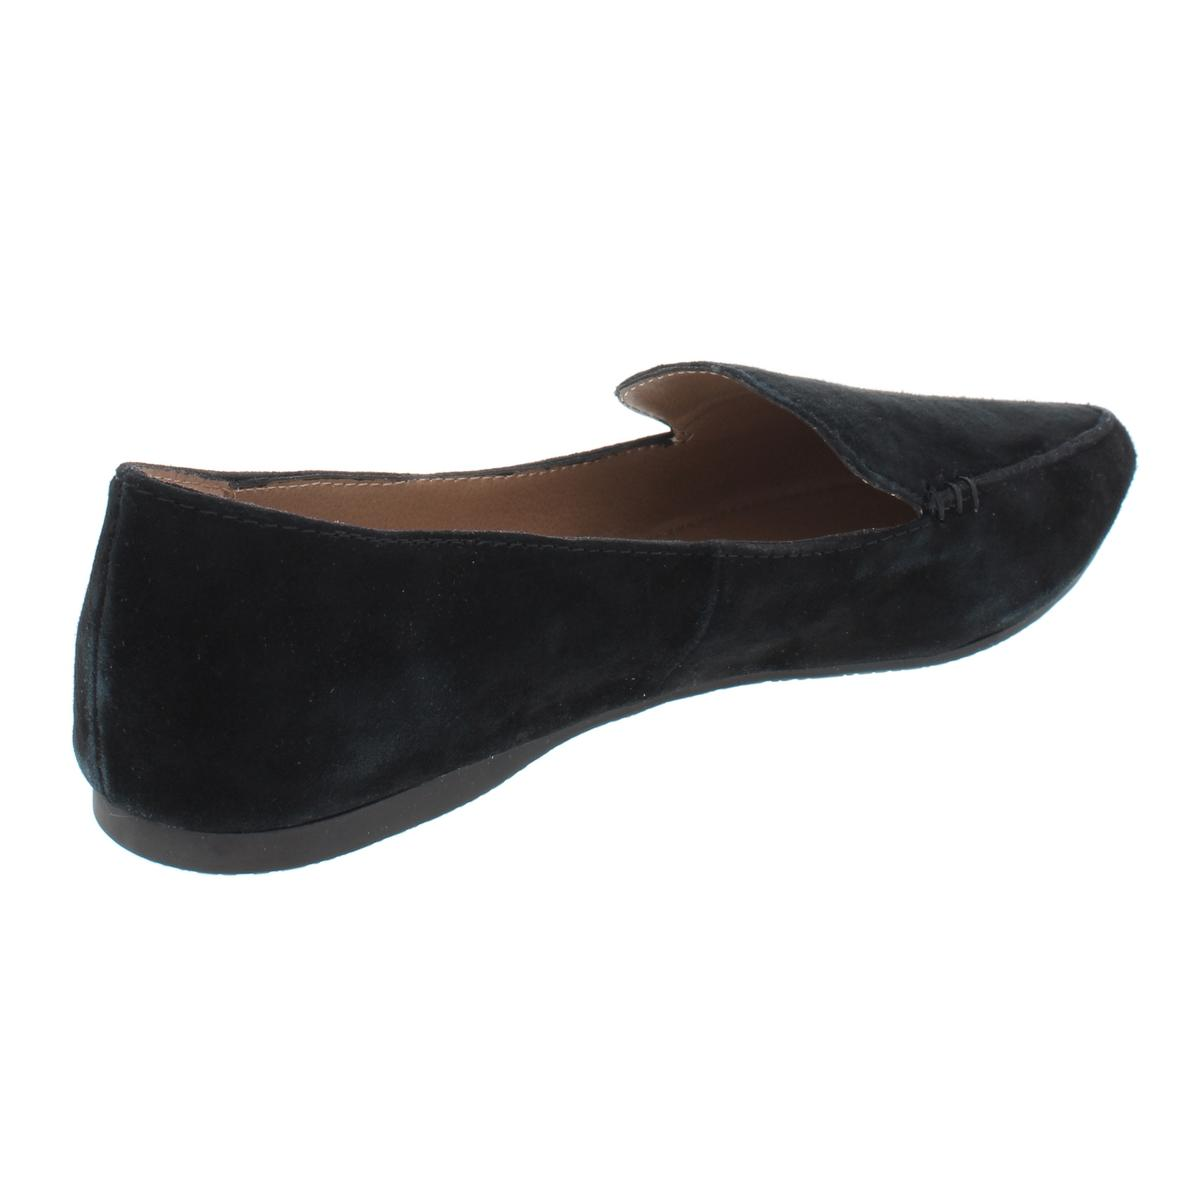 Steve-Madden-Womens-Feather-Dress-Loafers-Shoes-BHFO-7353 thumbnail 4